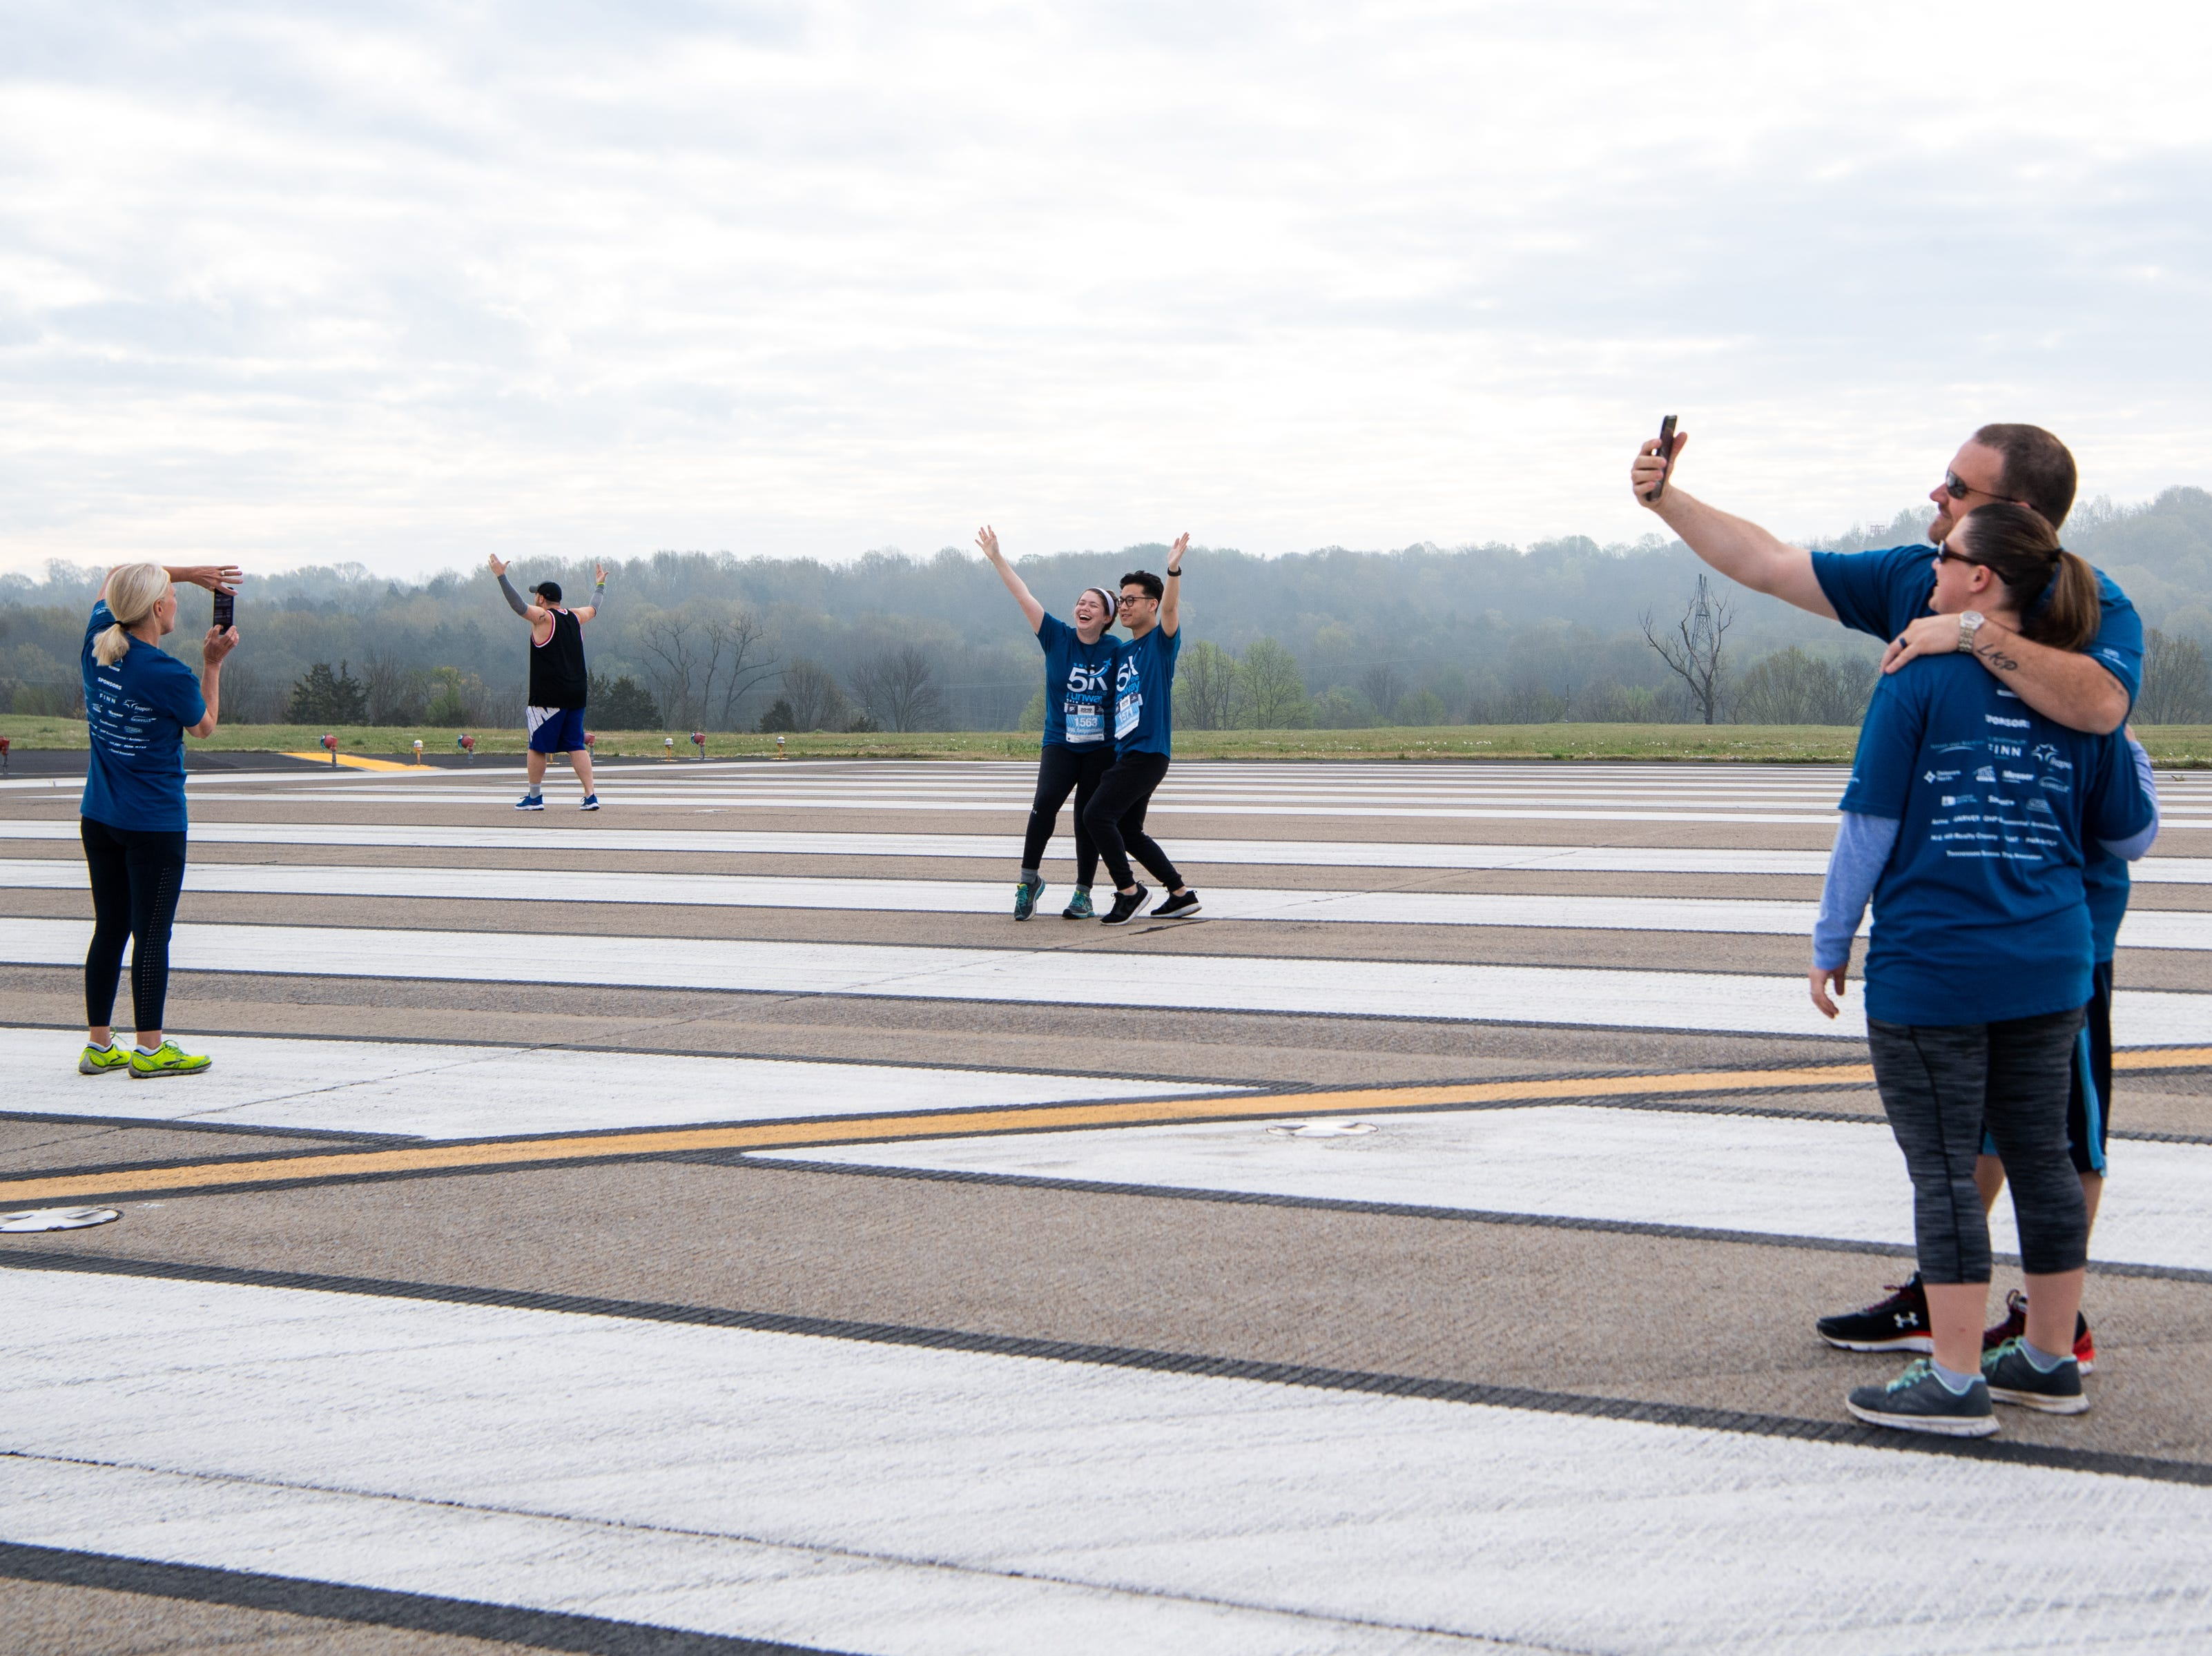 People take photos on Runway 2R/20L before the BNA 5K on the Runway at Nashville International Airport Saturday, April 6, 2019, in Nashville, Tenn.